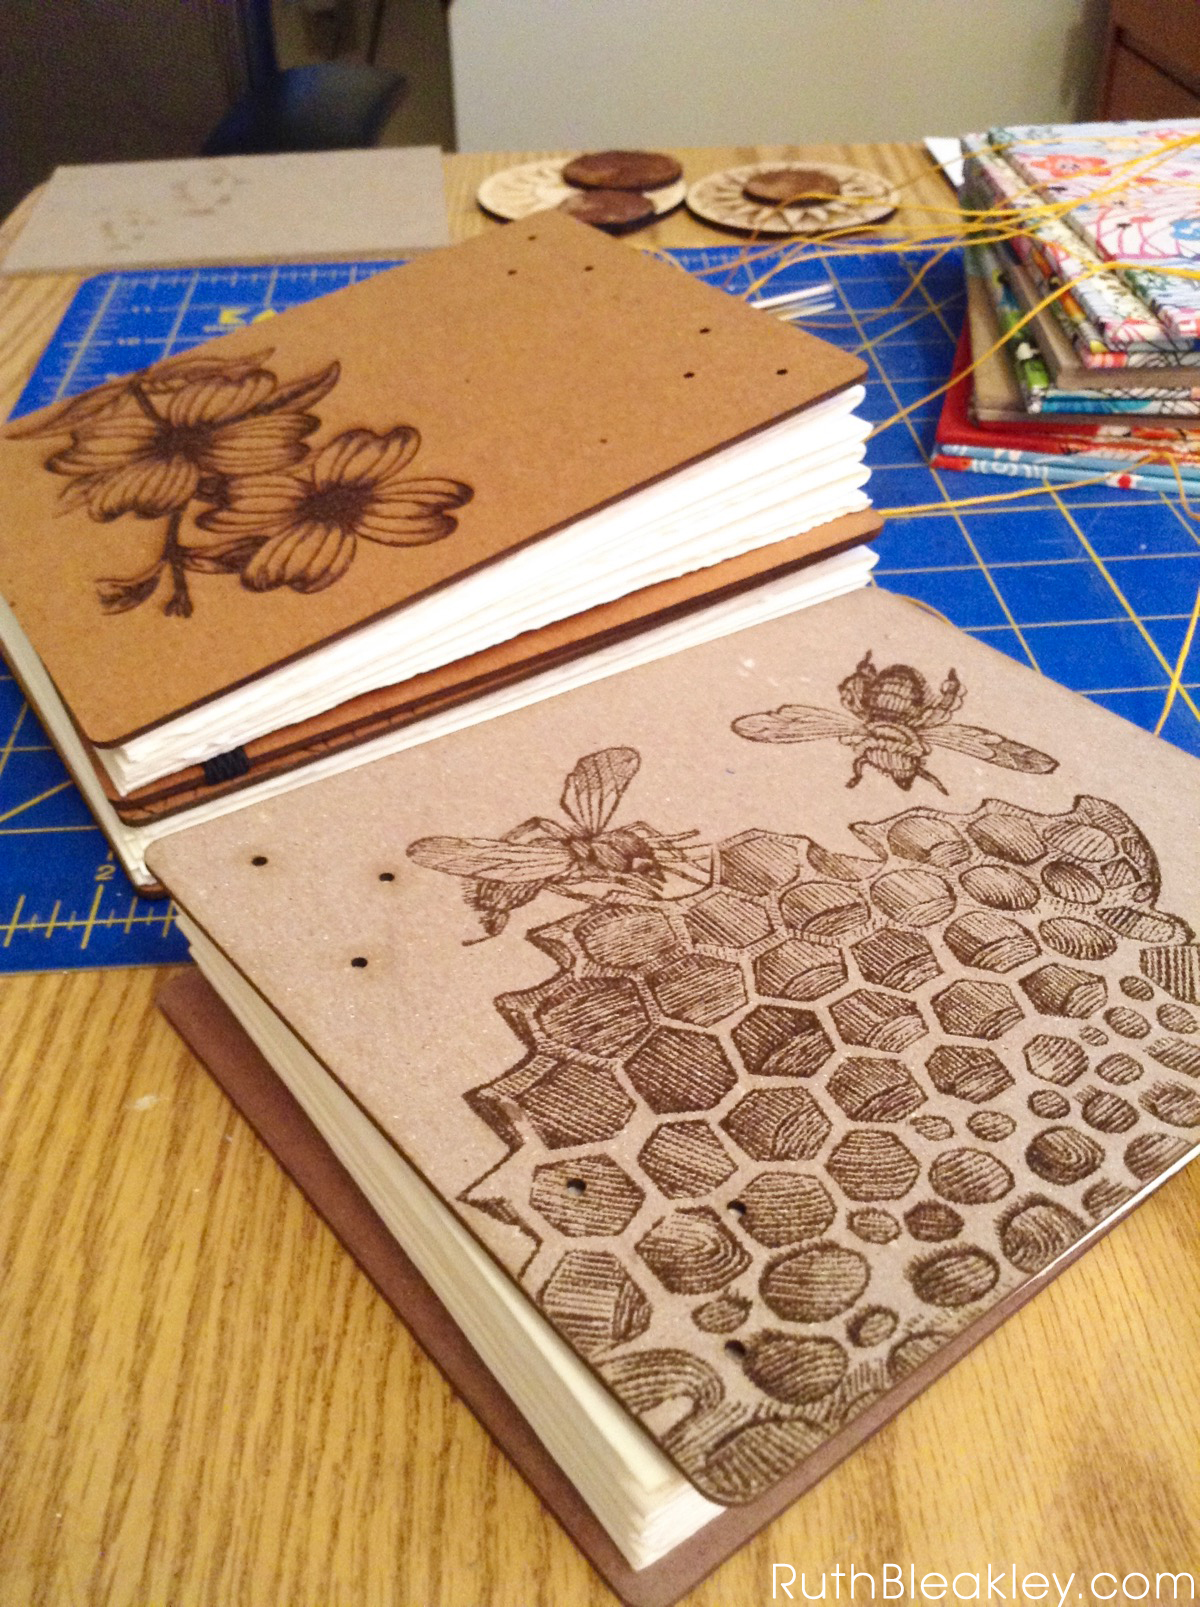 Honeybee Watercolor Sketchbook handmade by Ruth Bleakley with laser engraved cover - covers and pages ready for hand stitching